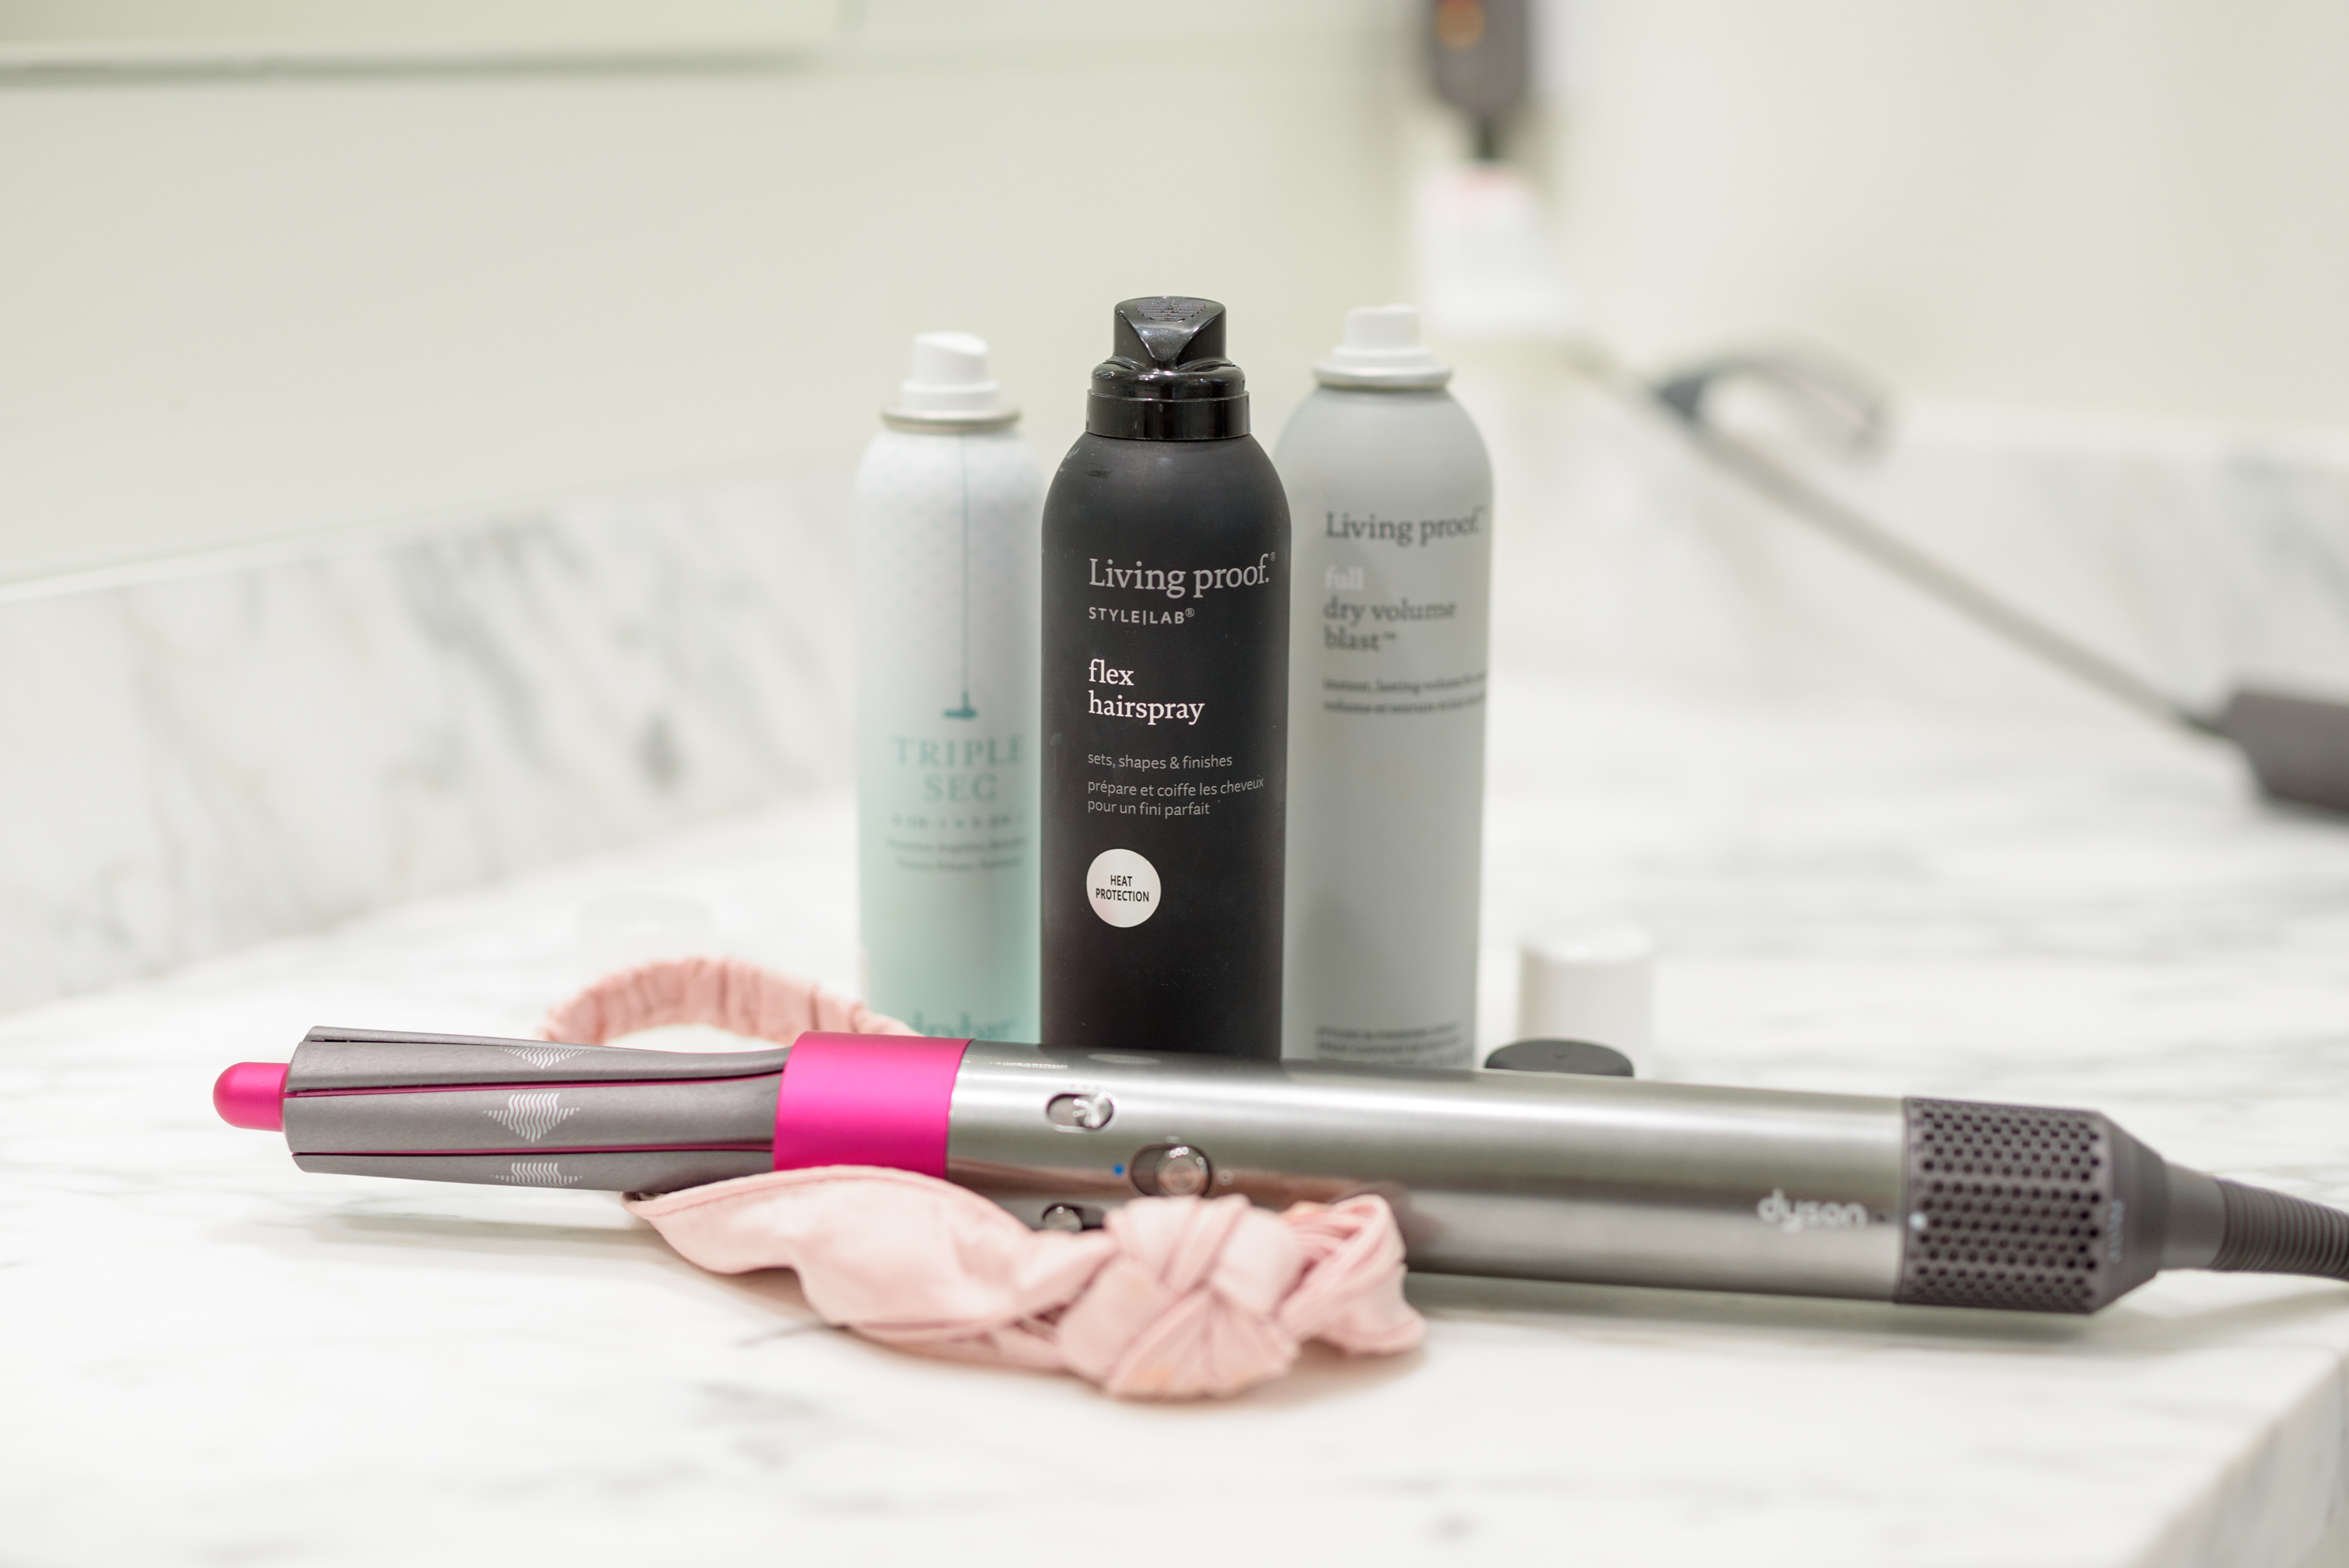 Fall Beauty by popular Houston beauty blog, Fancy Ashley: image of a Dyson hair wand, Living Proof flex hairspray, Living Proof dry volume blast, and dry bar triple sec dry shampoo.